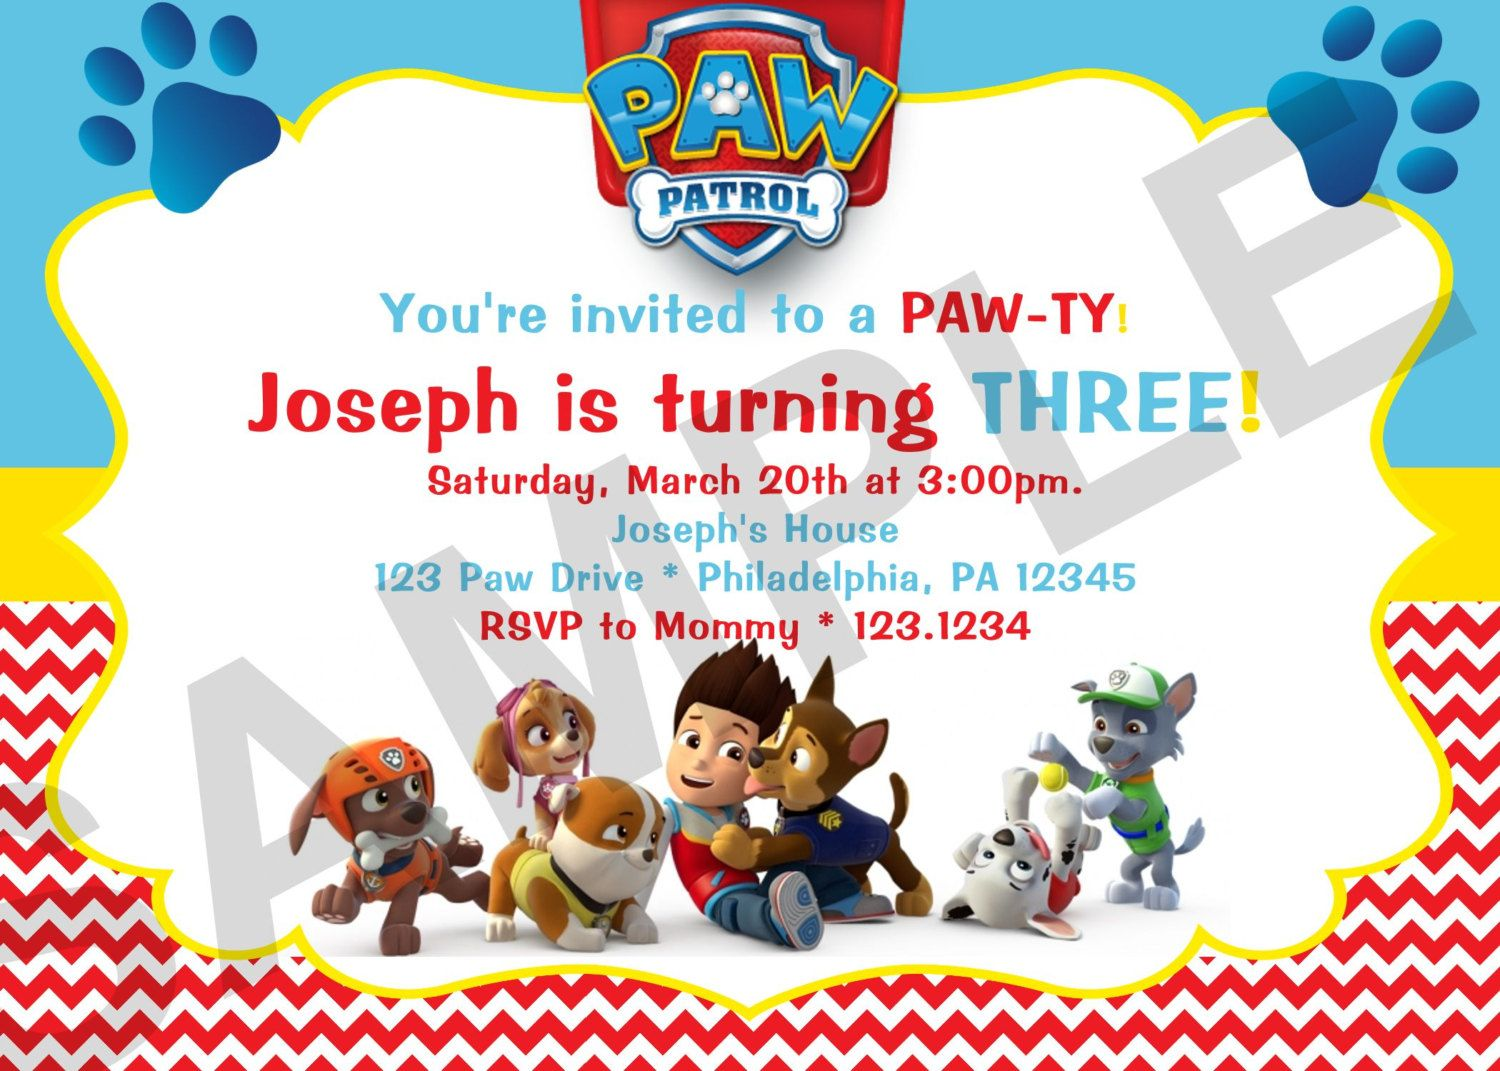 Download Paw Patrol Birthday Invitations For Free Just Right Click - Paw patrol invitation template